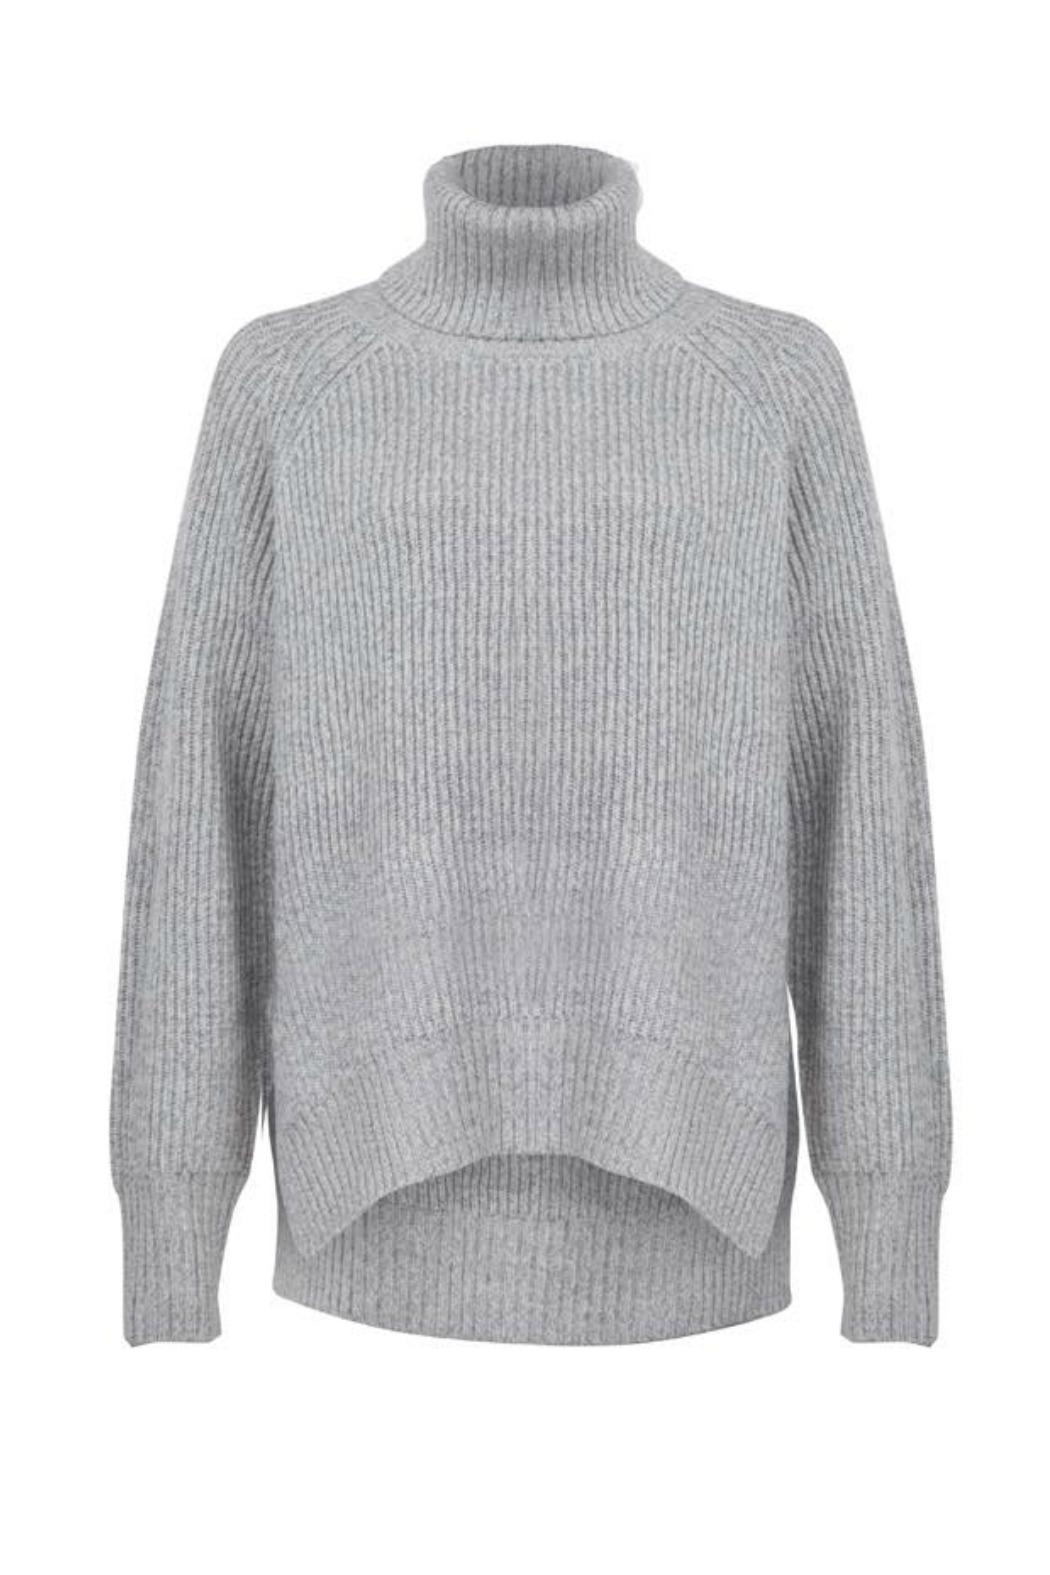 Dex Grey Turtleneck Sweater From Denver By The Street